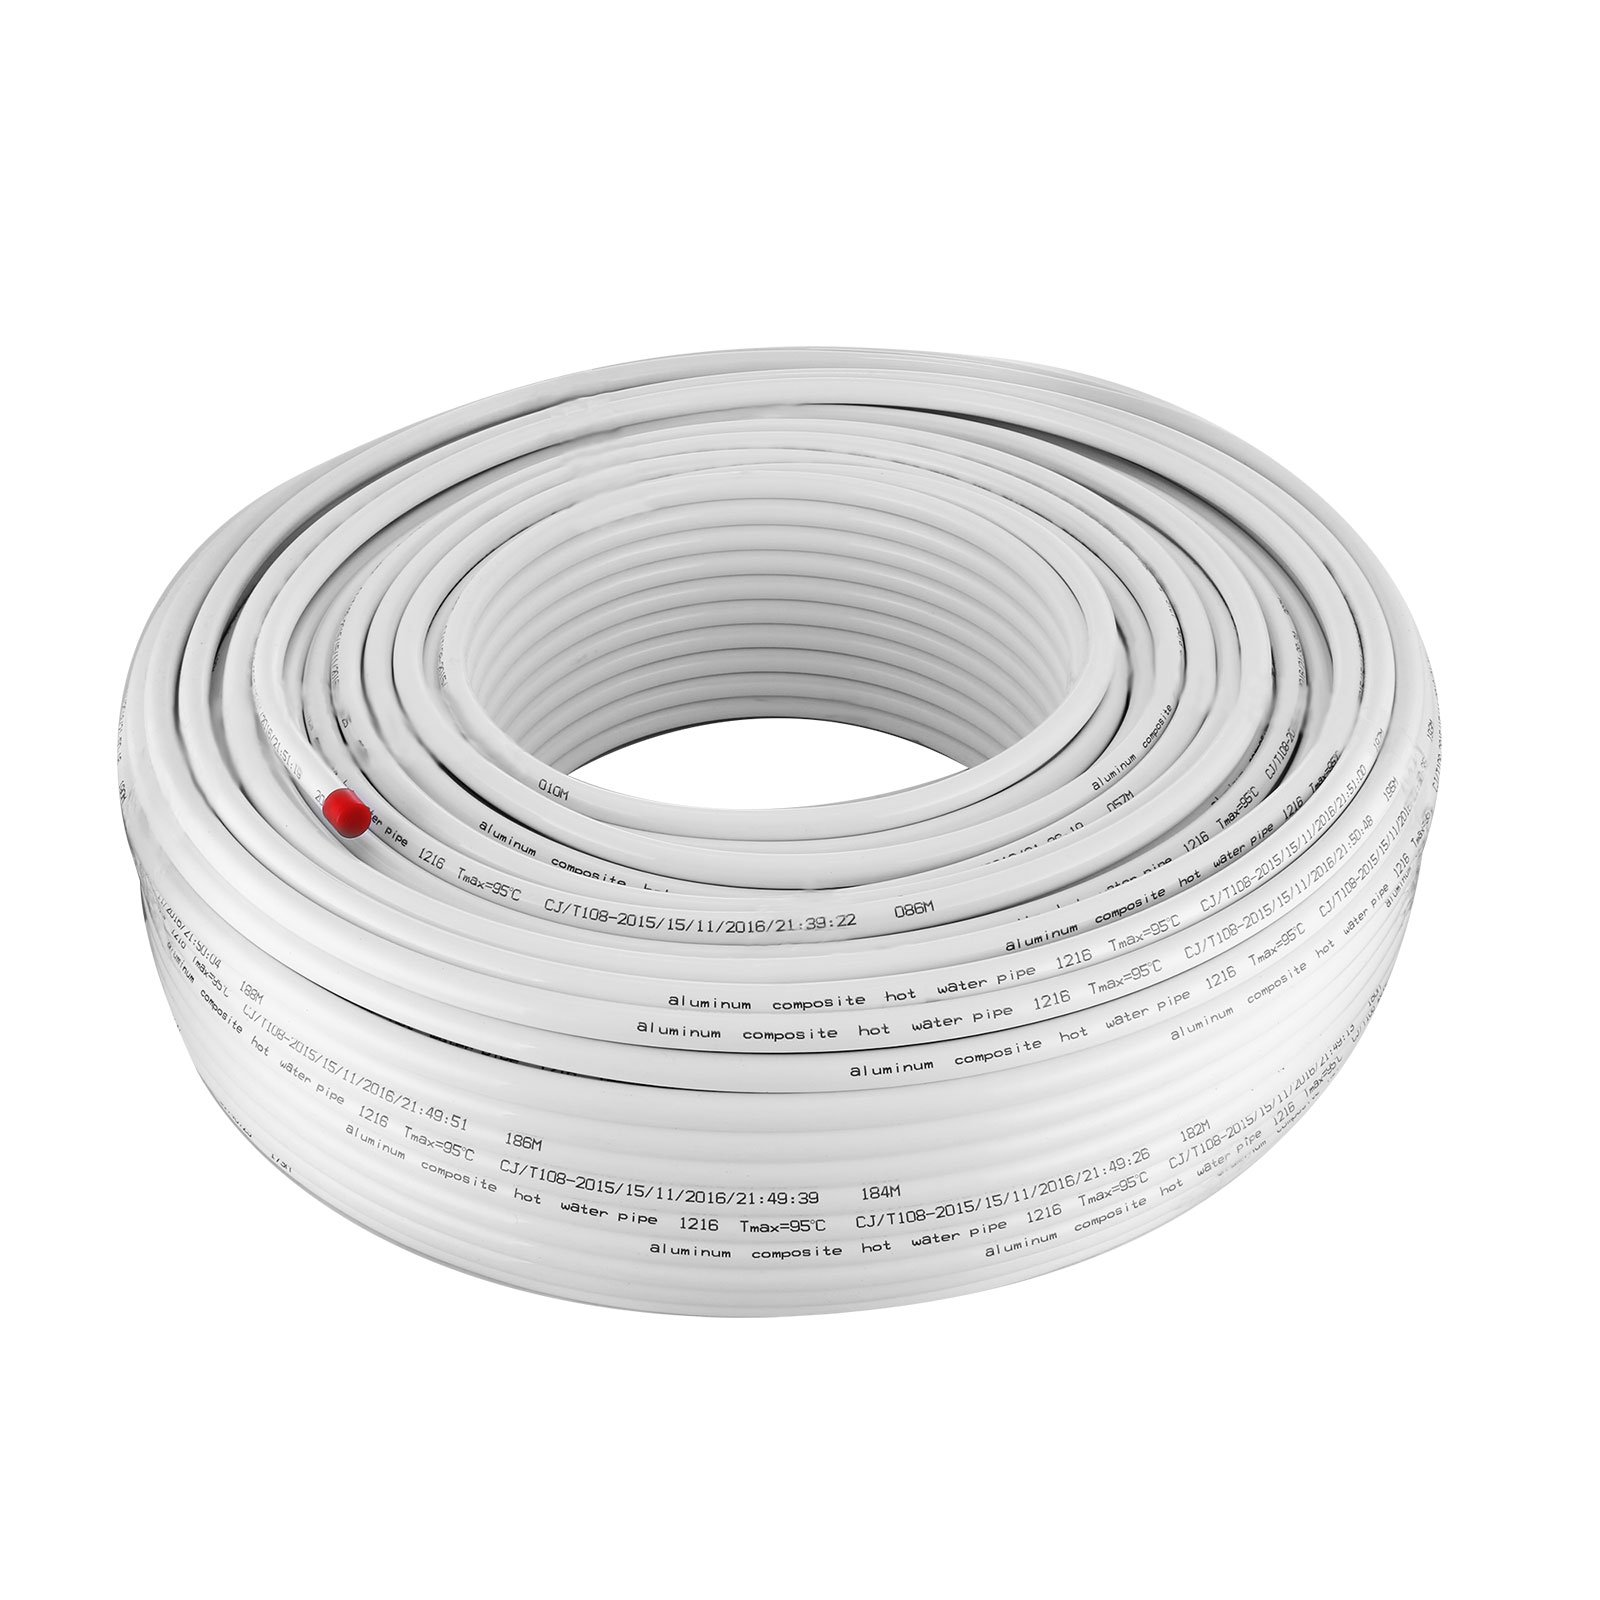 Mophorn PEX AL PEX Tubing 1/2 Inch Roll of 656 Ft 200 M Radiant Heat Tubing Nontoxic for Heating and Plumbing Hot and Cold Water Piping Radiant Floor PEX Al Tubing White by Mophorn (Image #9)